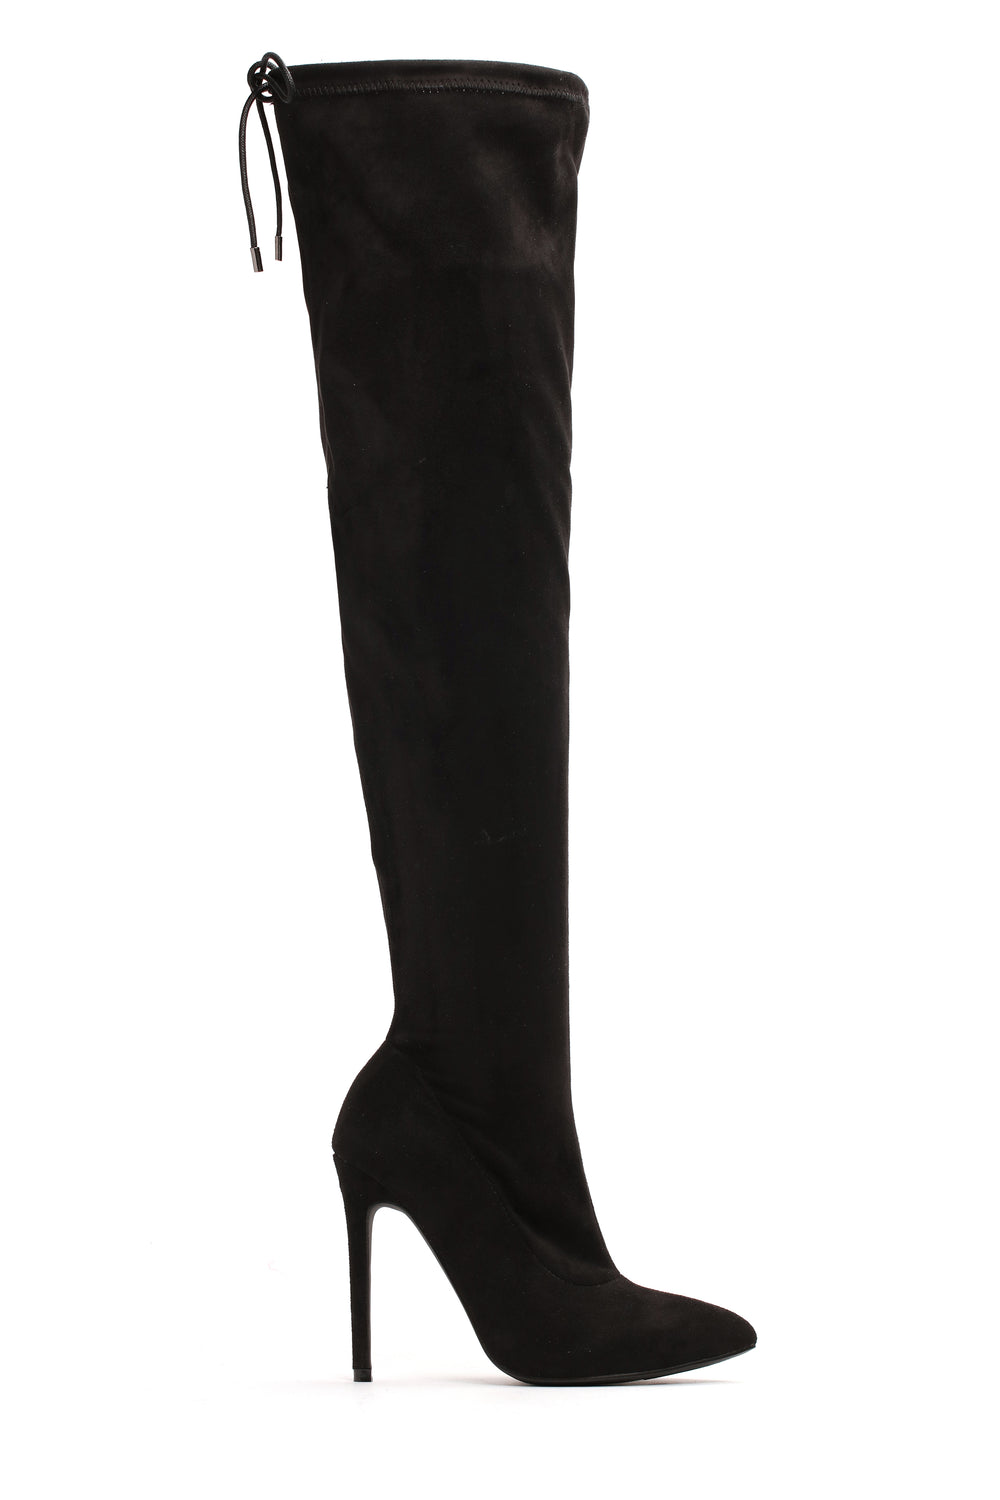 You're Not Ready Heeled Boot - Black